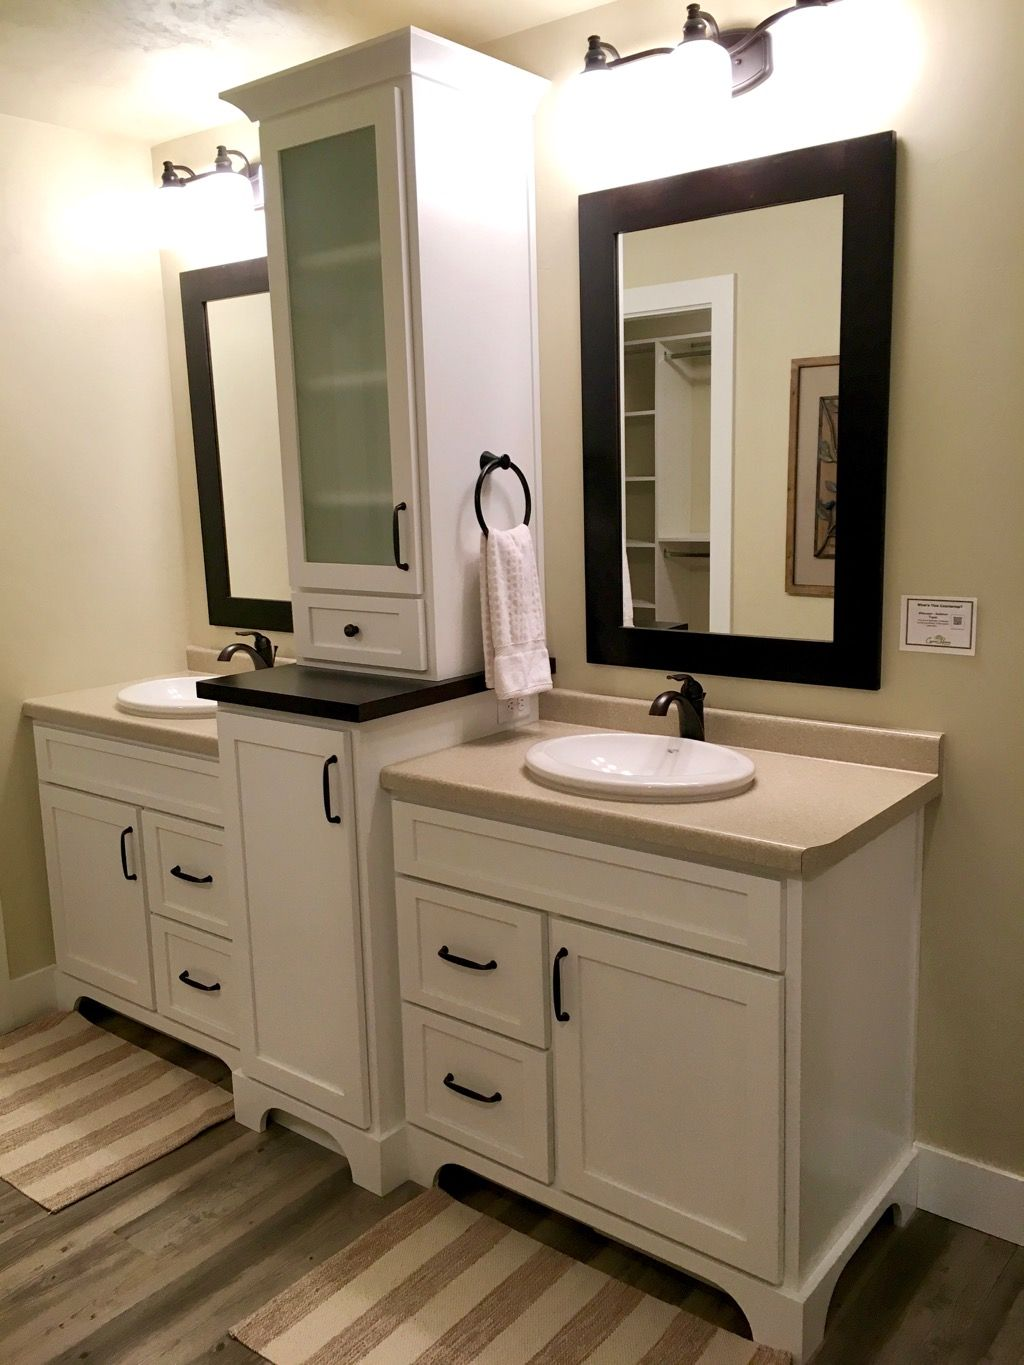 A Center Built In Is The Perfect Master Bathroom Piece To